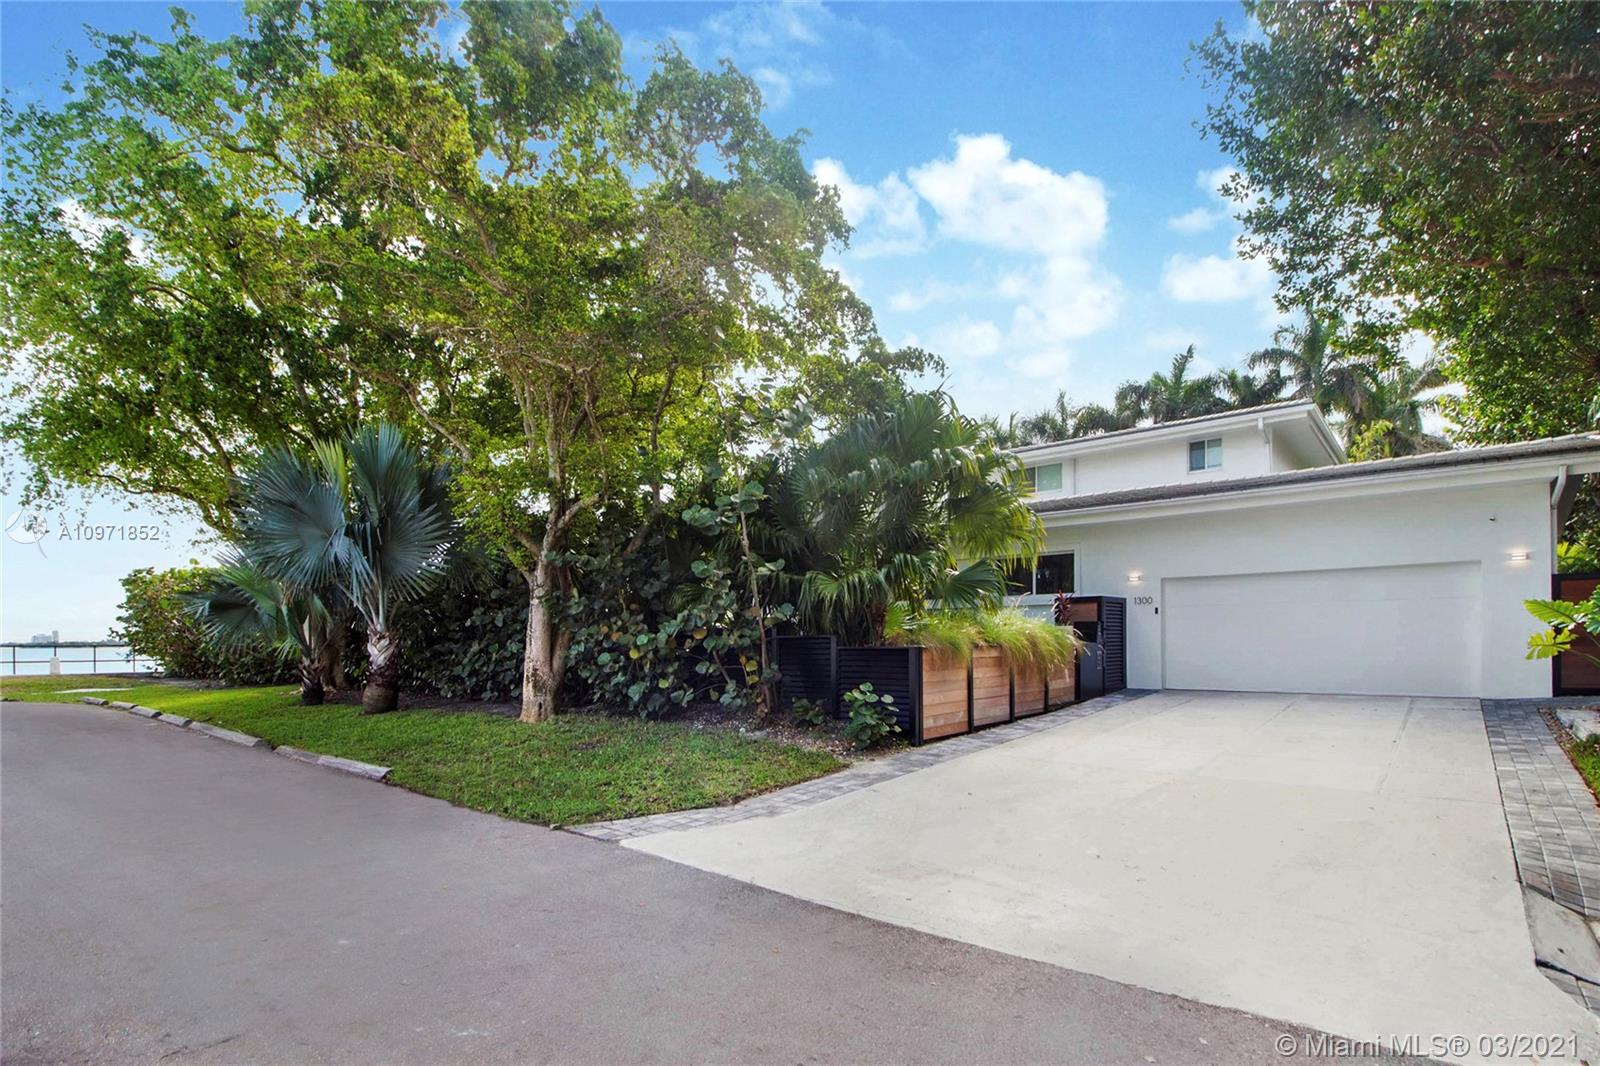 1300 NE 94th St, Miami Shores, Florida 33138, 6 Bedrooms Bedrooms, ,8 BathroomsBathrooms,Residential,For Sale,1300 NE 94th St,A10971852